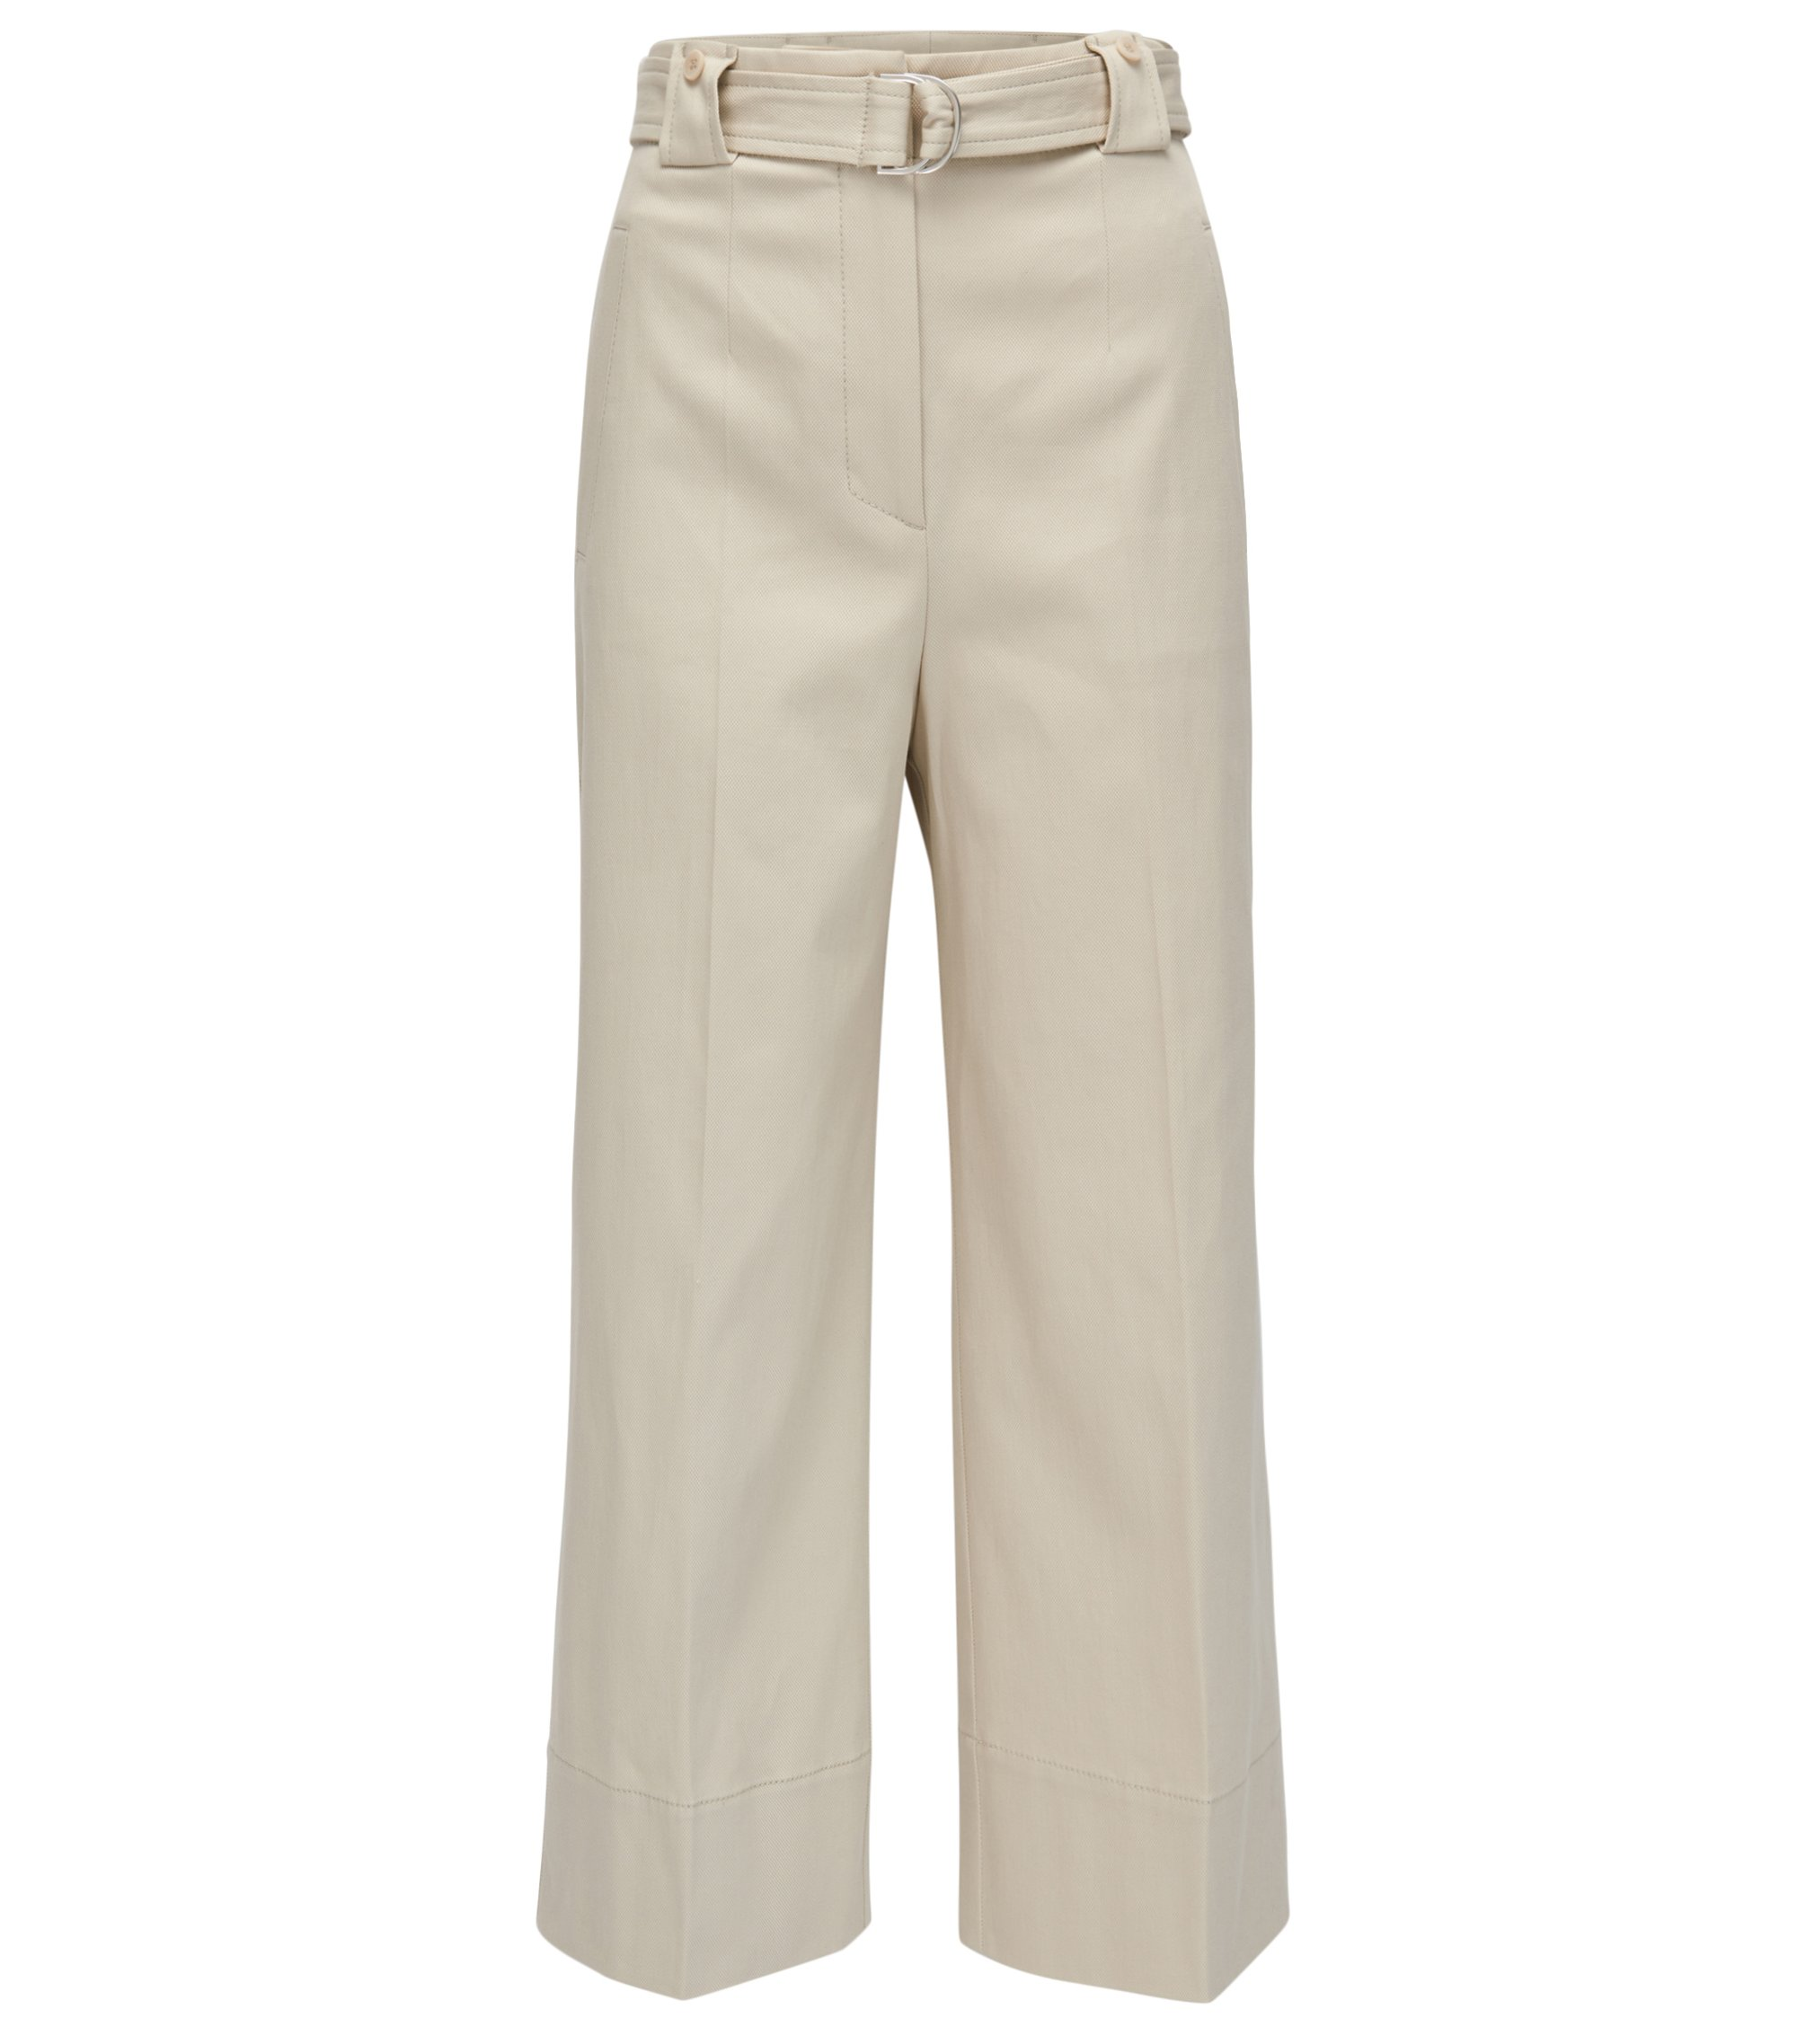 Pantalon Regular Fit en coton stretch à jambes larges, Beige clair